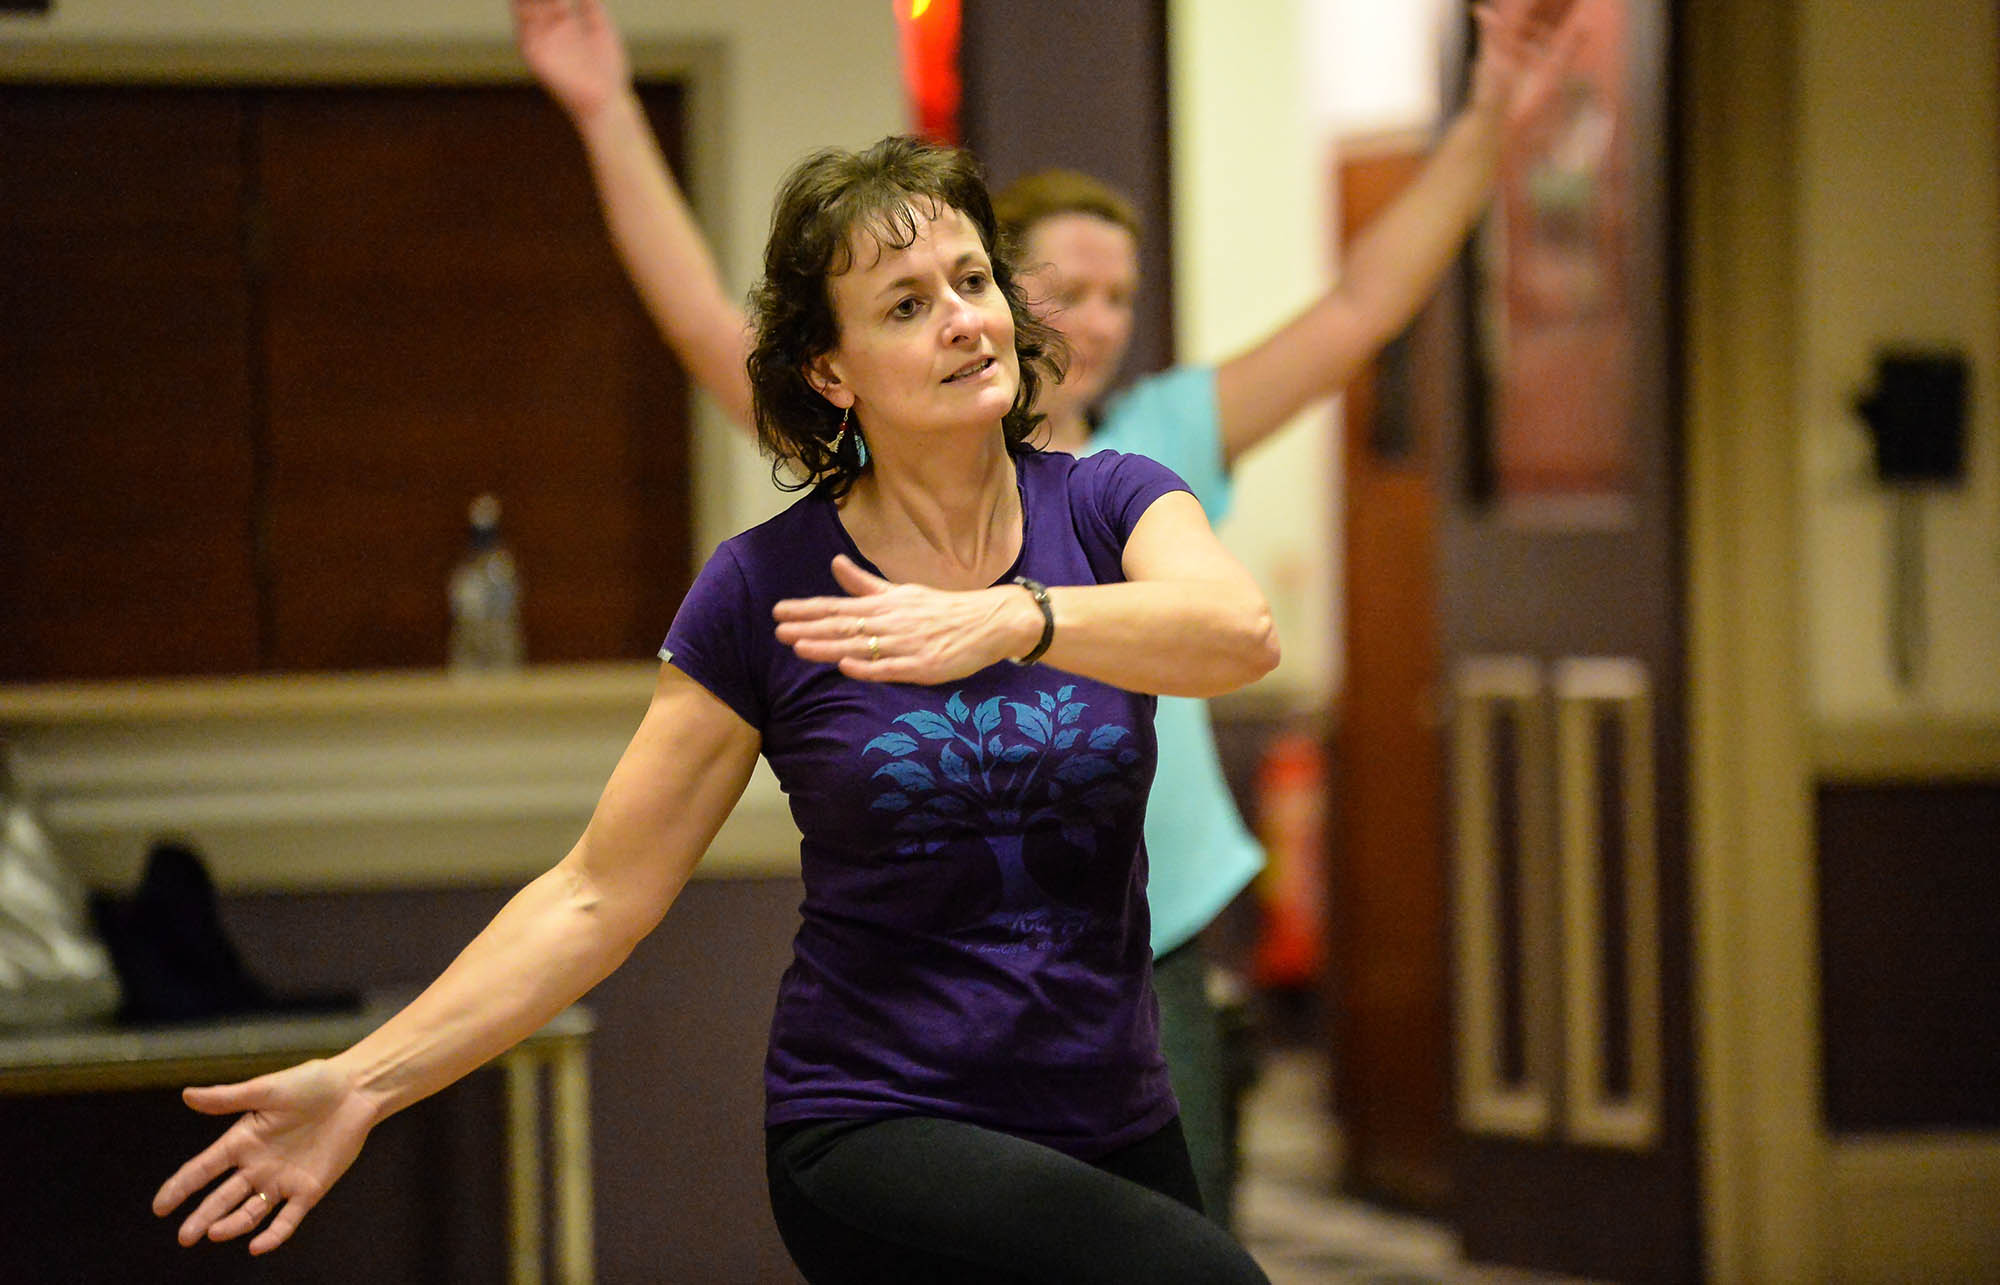 woman looking ahead with arms across body doing exercise indoors